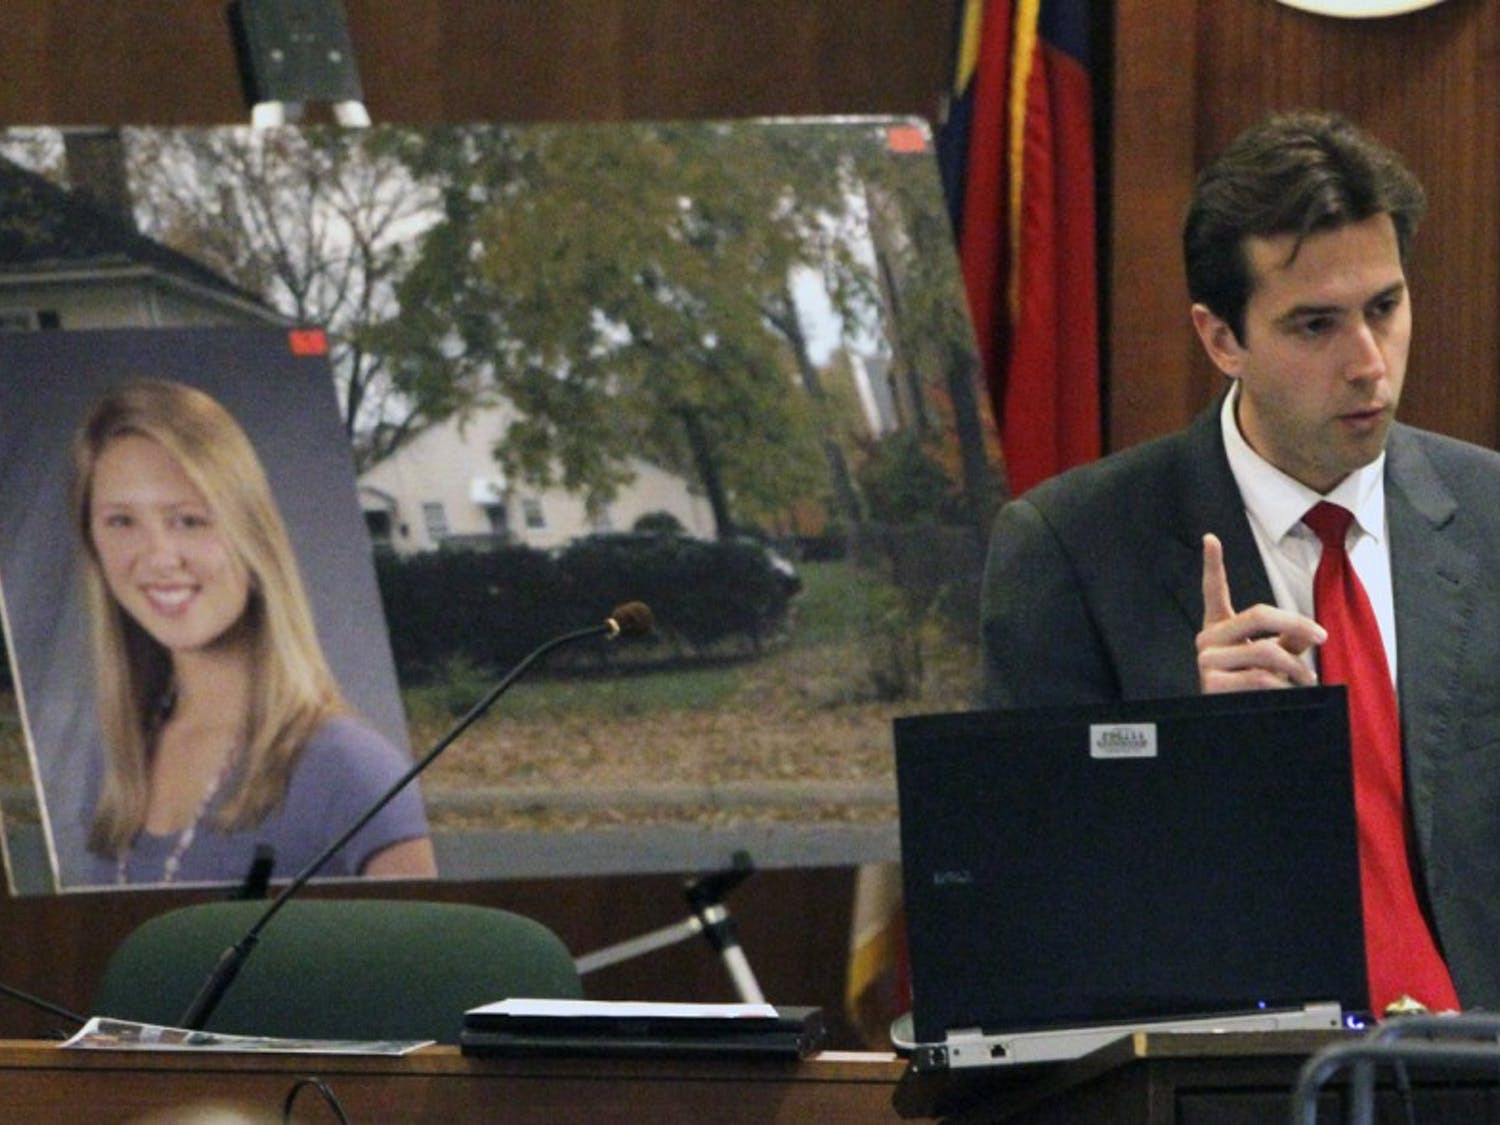 Orange Co. assistant DA James Rainsford, right, begins closing arguments for the prosecution before the jury Monday, Dec. 1, 2011 in the kidnap, robbery and murder trial of defendant Laurence Alvin Lovette, 21, of Durham. At left are two enlarged prosecution photos, one of UNC student body president Eve Carson, who was murdered on March 5, 2008. Lovette is one of two men charged in Carson's death.